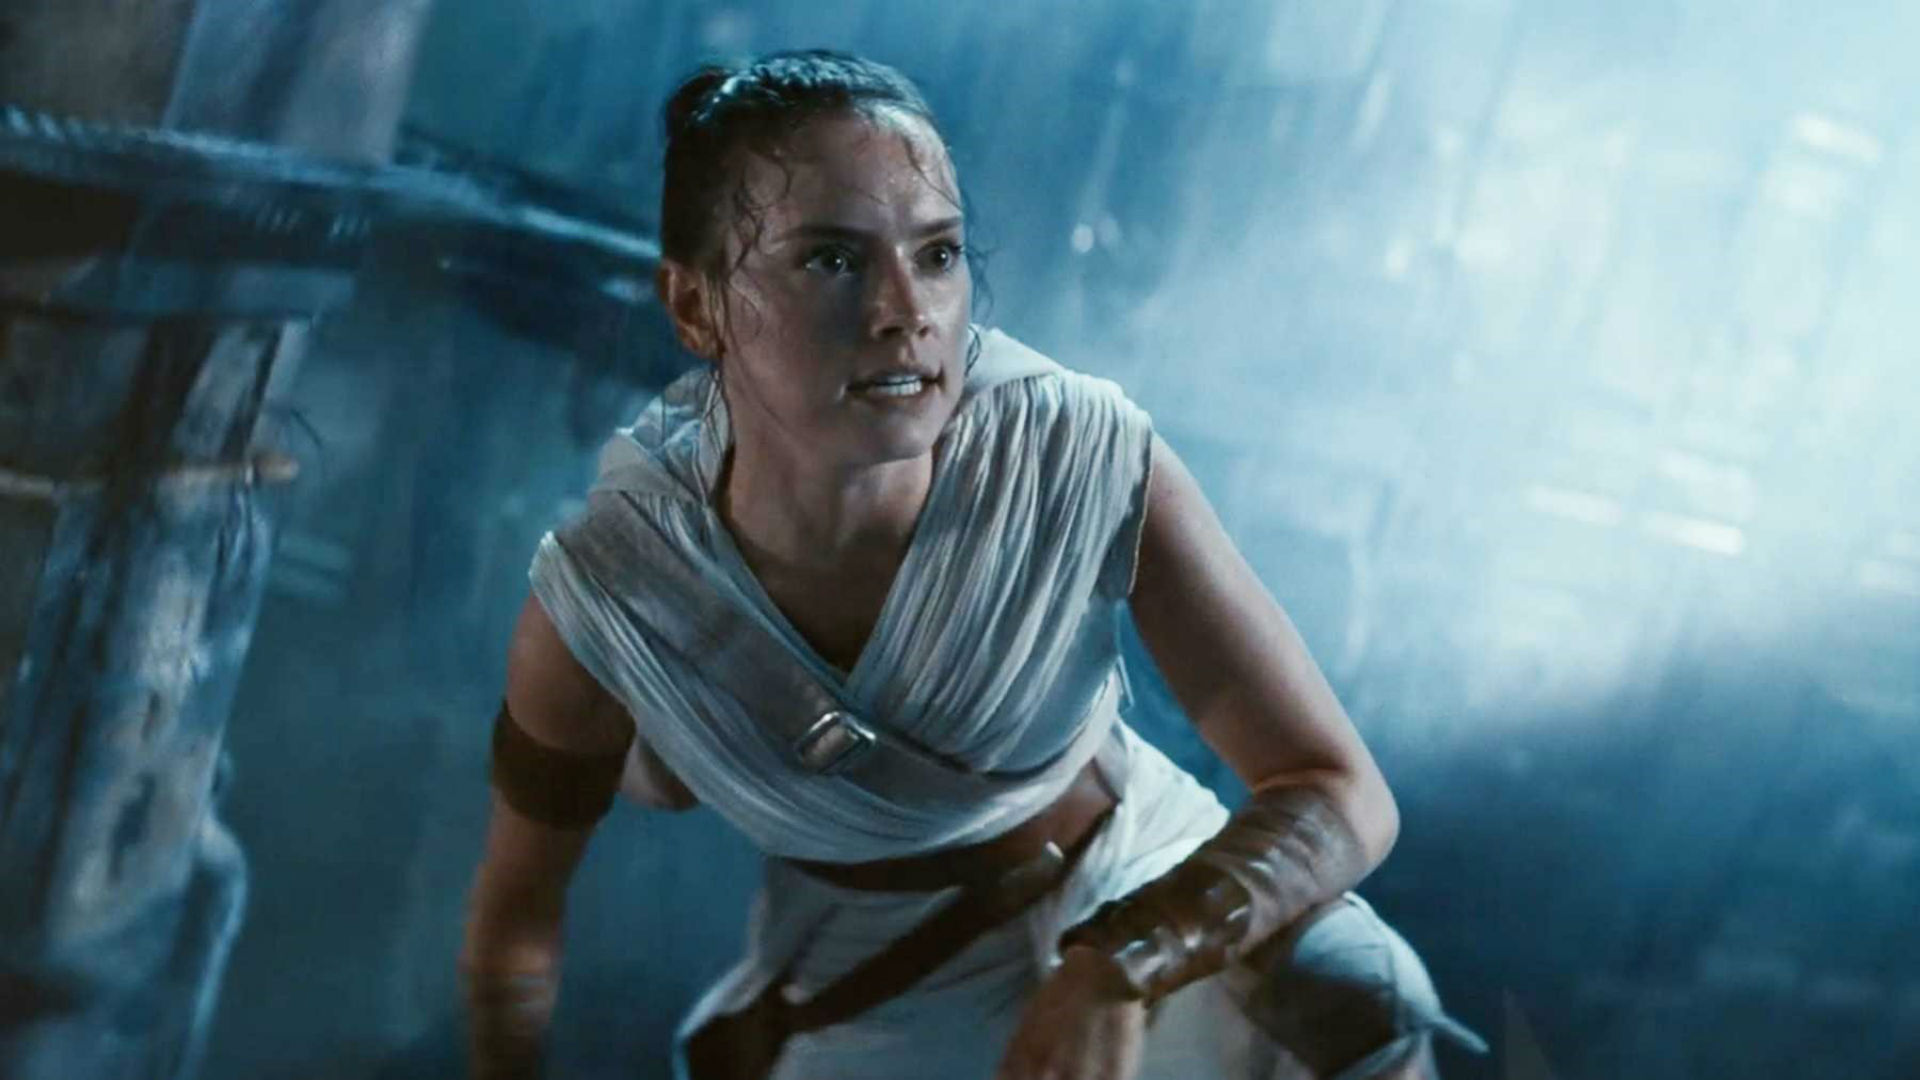 Star Wars The Rise Of Skywalker Is Available For Digital Purchase Four Days Early Gamesradar